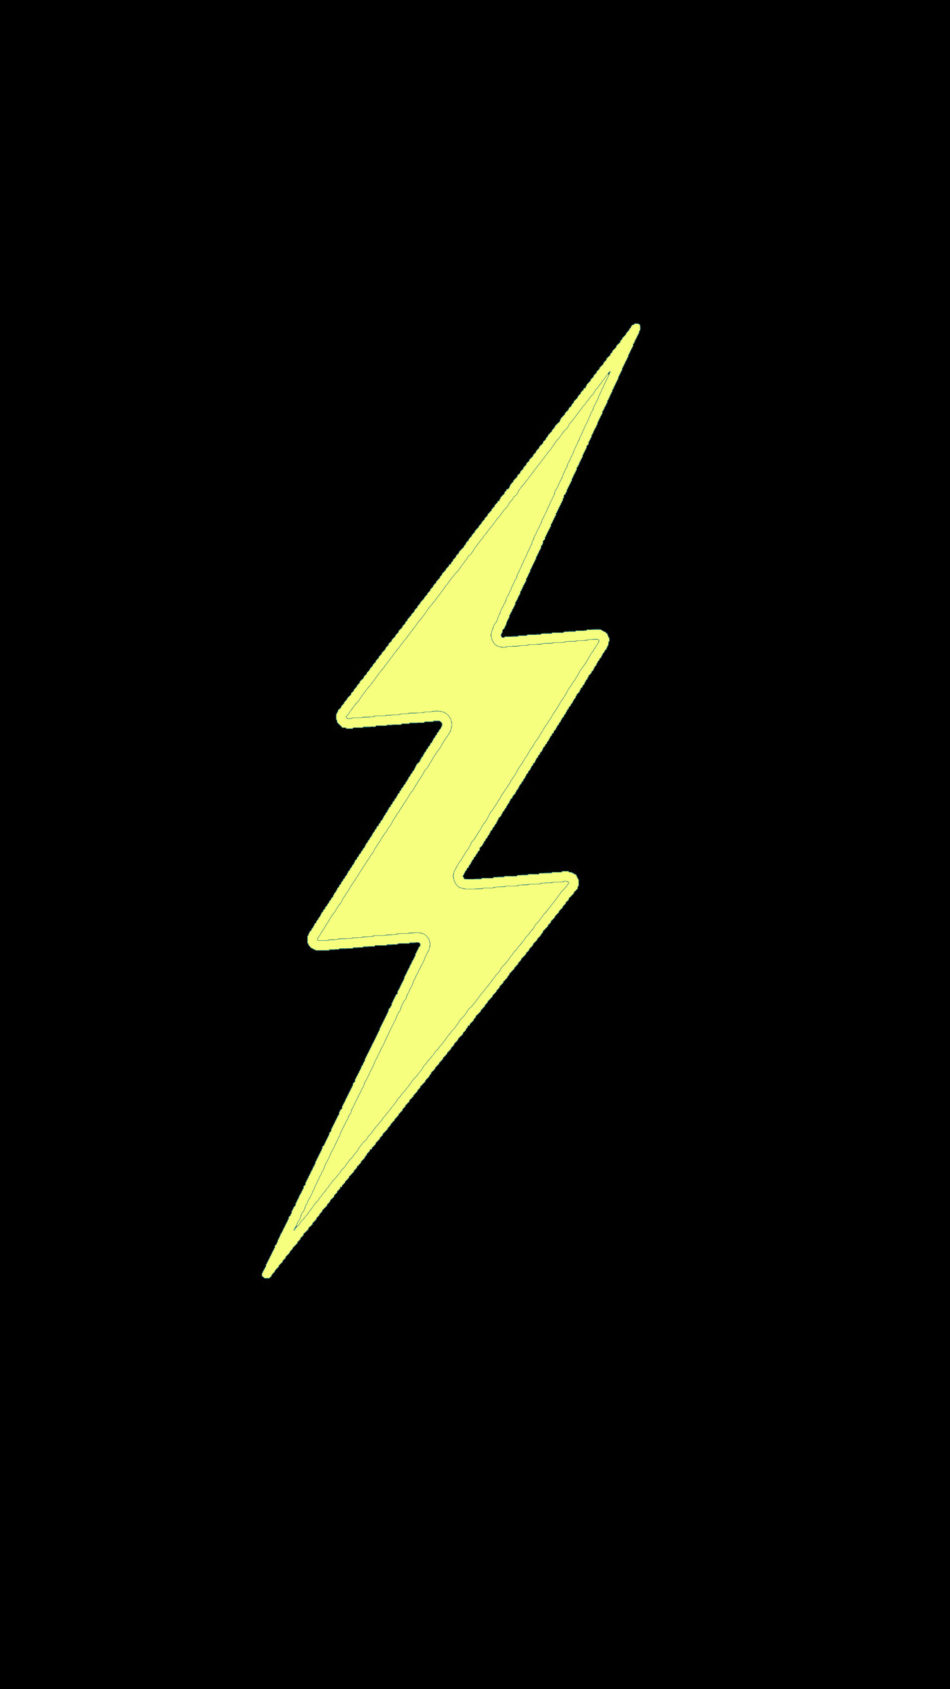 Yellow Flash Dark Background 4K Ultra HD Mobile Wallpaper